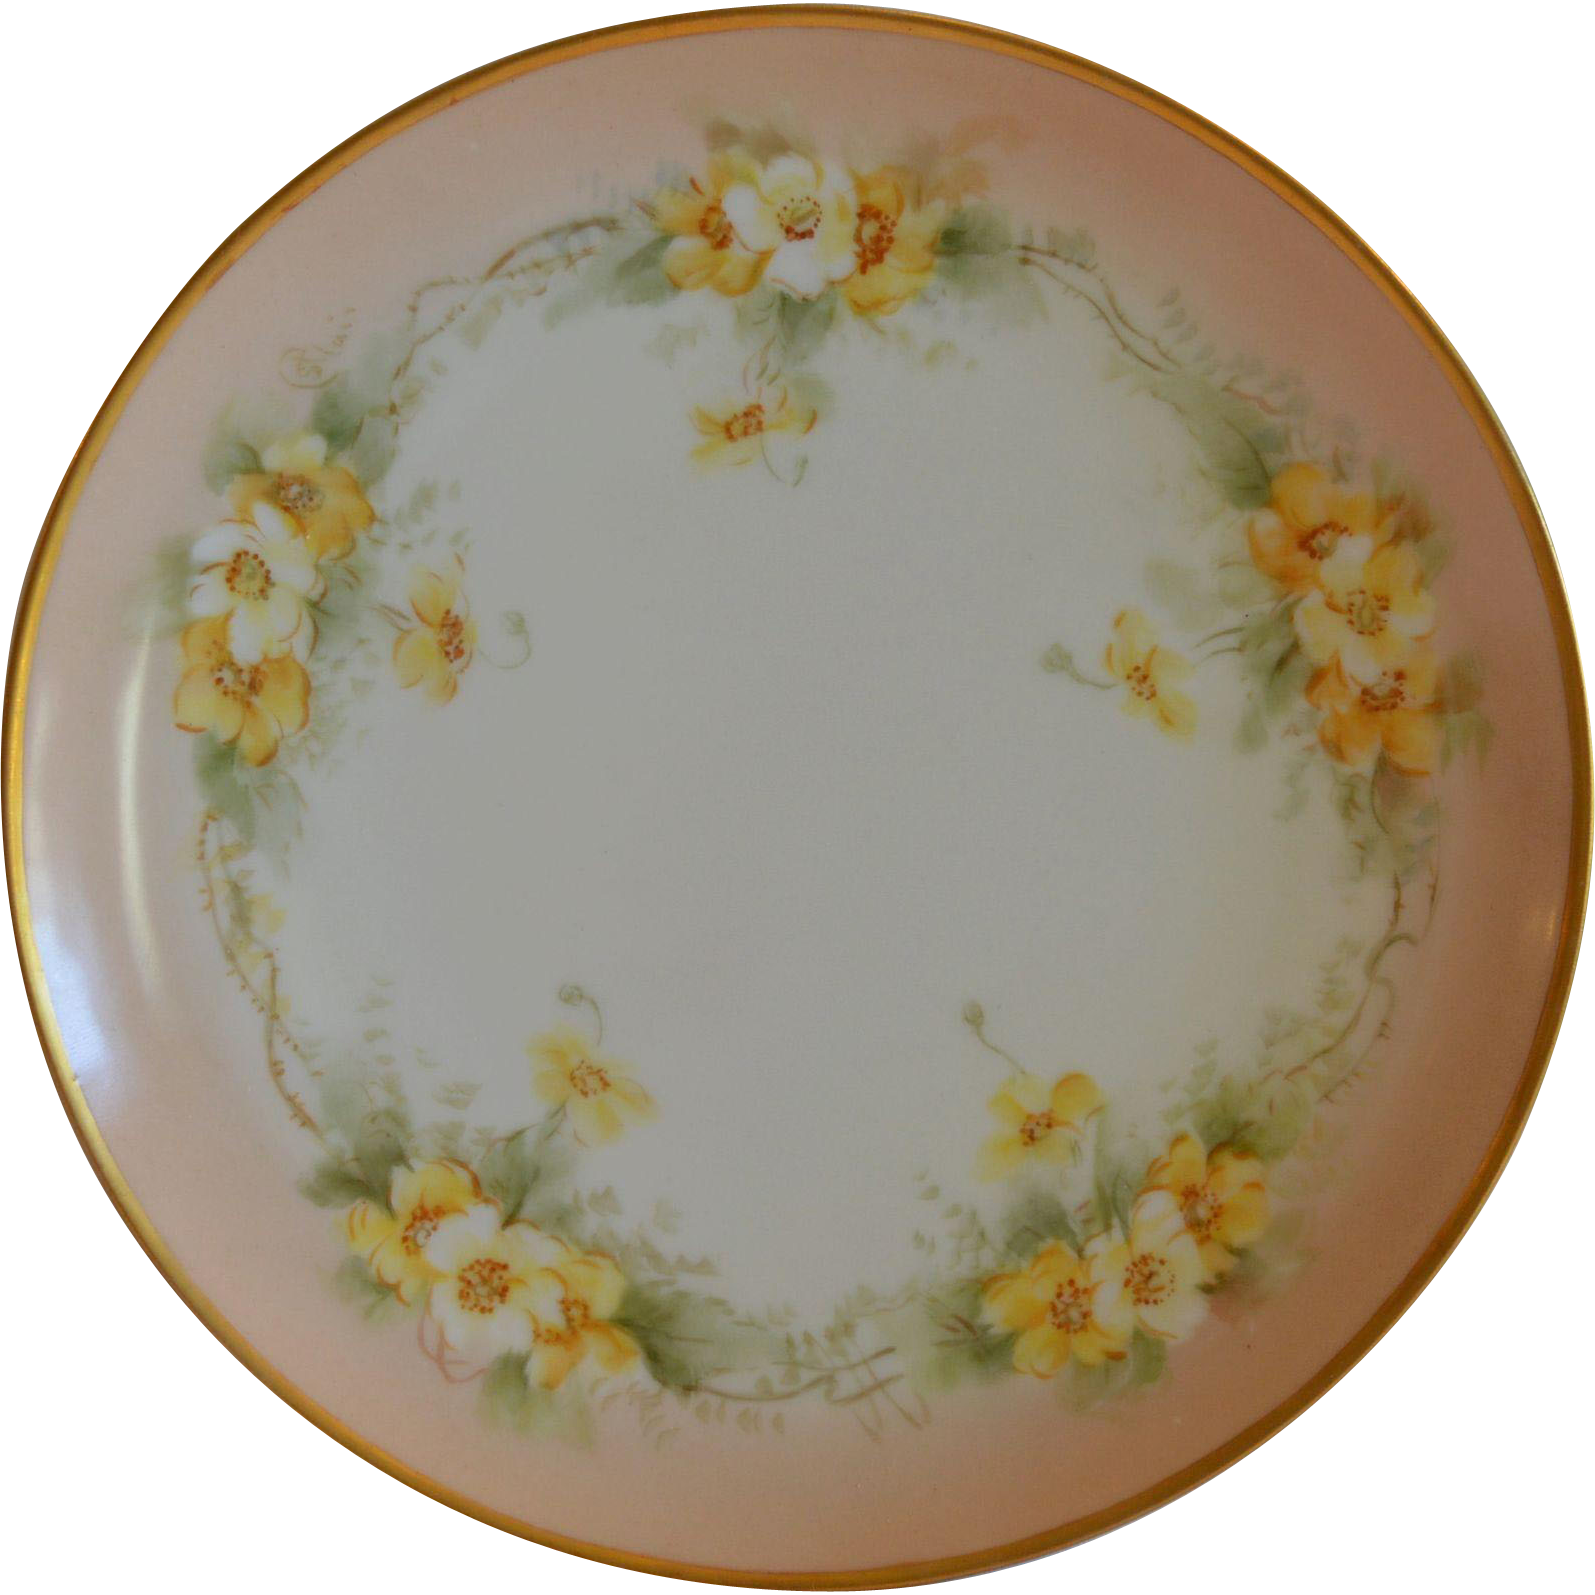 Hand Painted Limoges Plate with Beautiful Yellow Roses ~ signed St. Clair ~ Haviland France 1894-1931